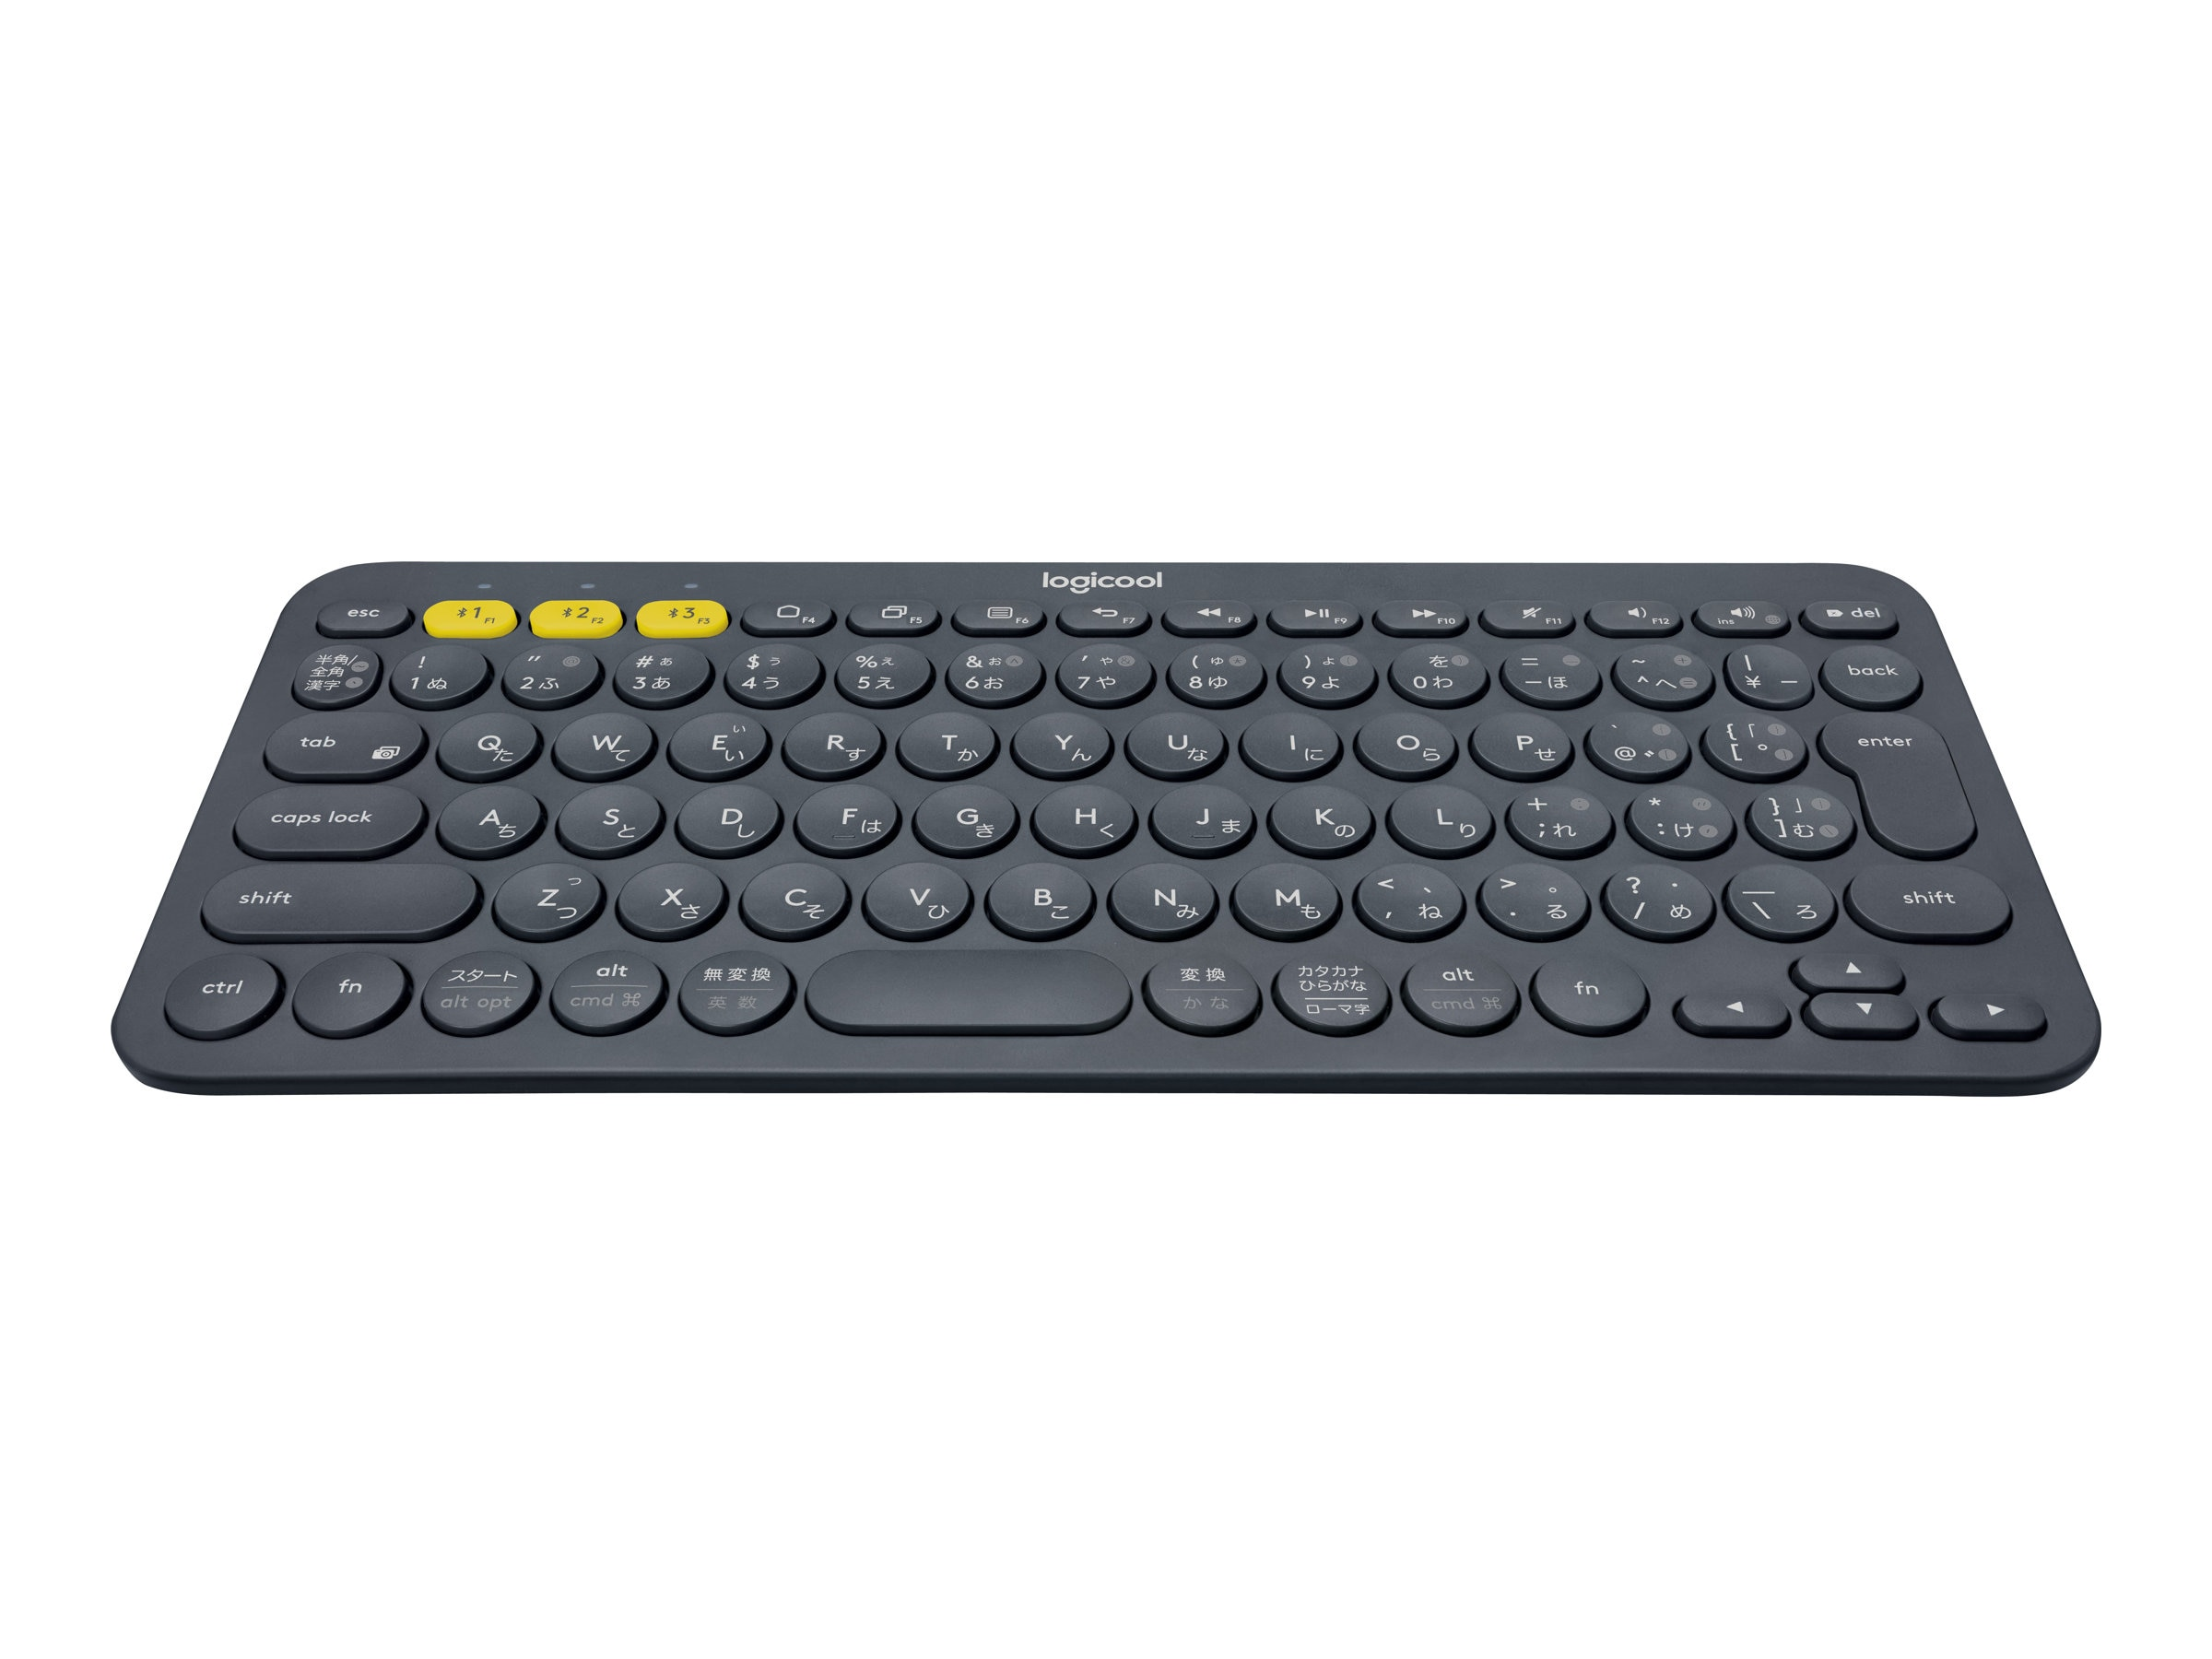 Logitech K380 Multi-Device Bluetooth Keyboard, Black, 920-007558, 31076711, Keyboards & Keypads